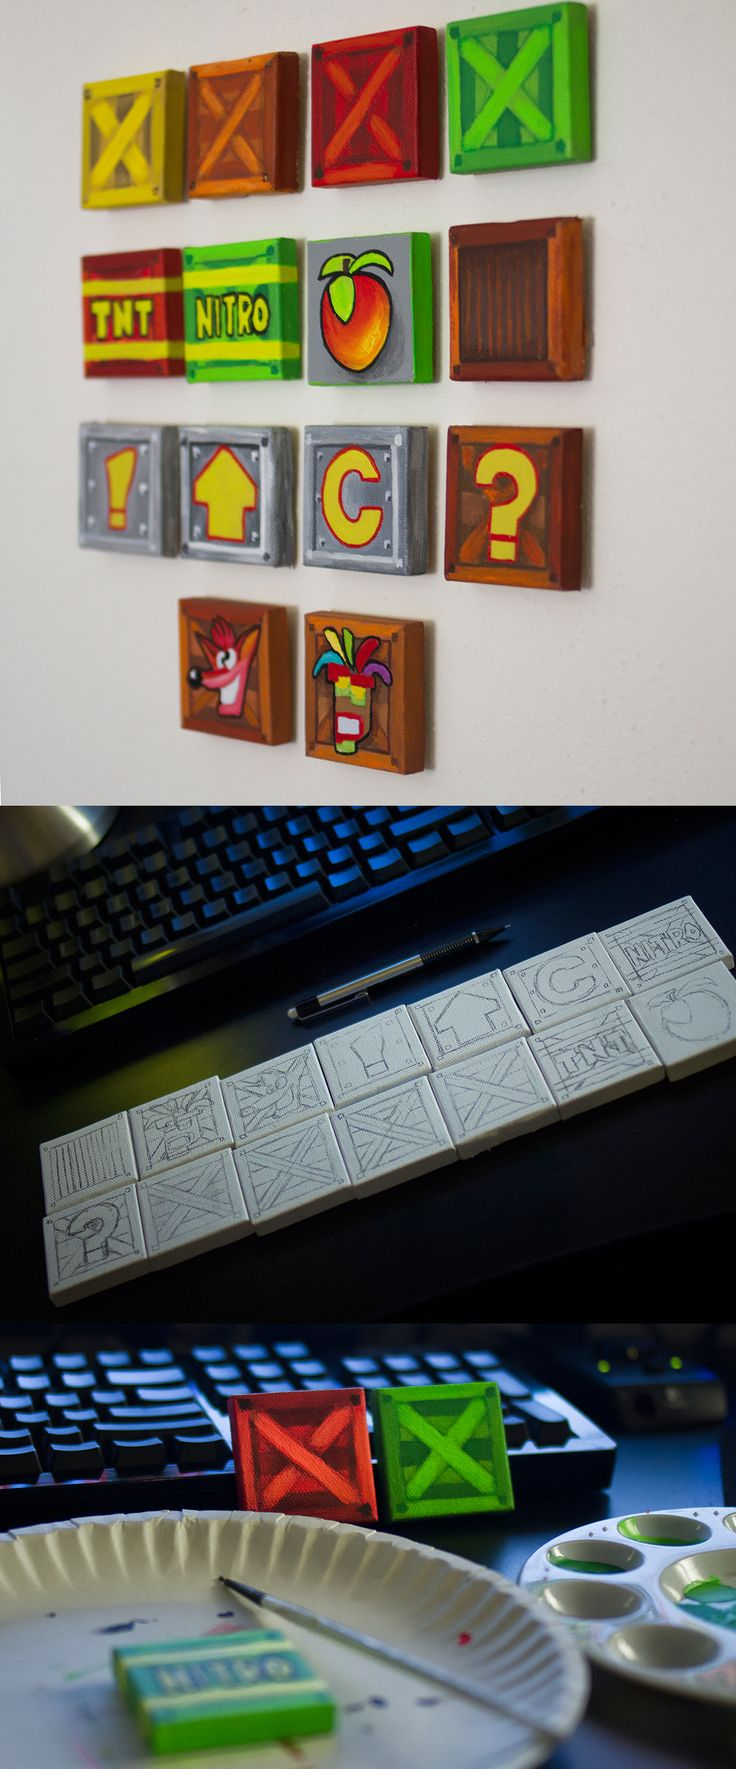 "Crash Bandicoot (1996, Playstation) A magnet set featuring the crates, apples, and power-ups from the game every playstation owner owns! these magnets are 1"" by 1"" acrylic on canvas."